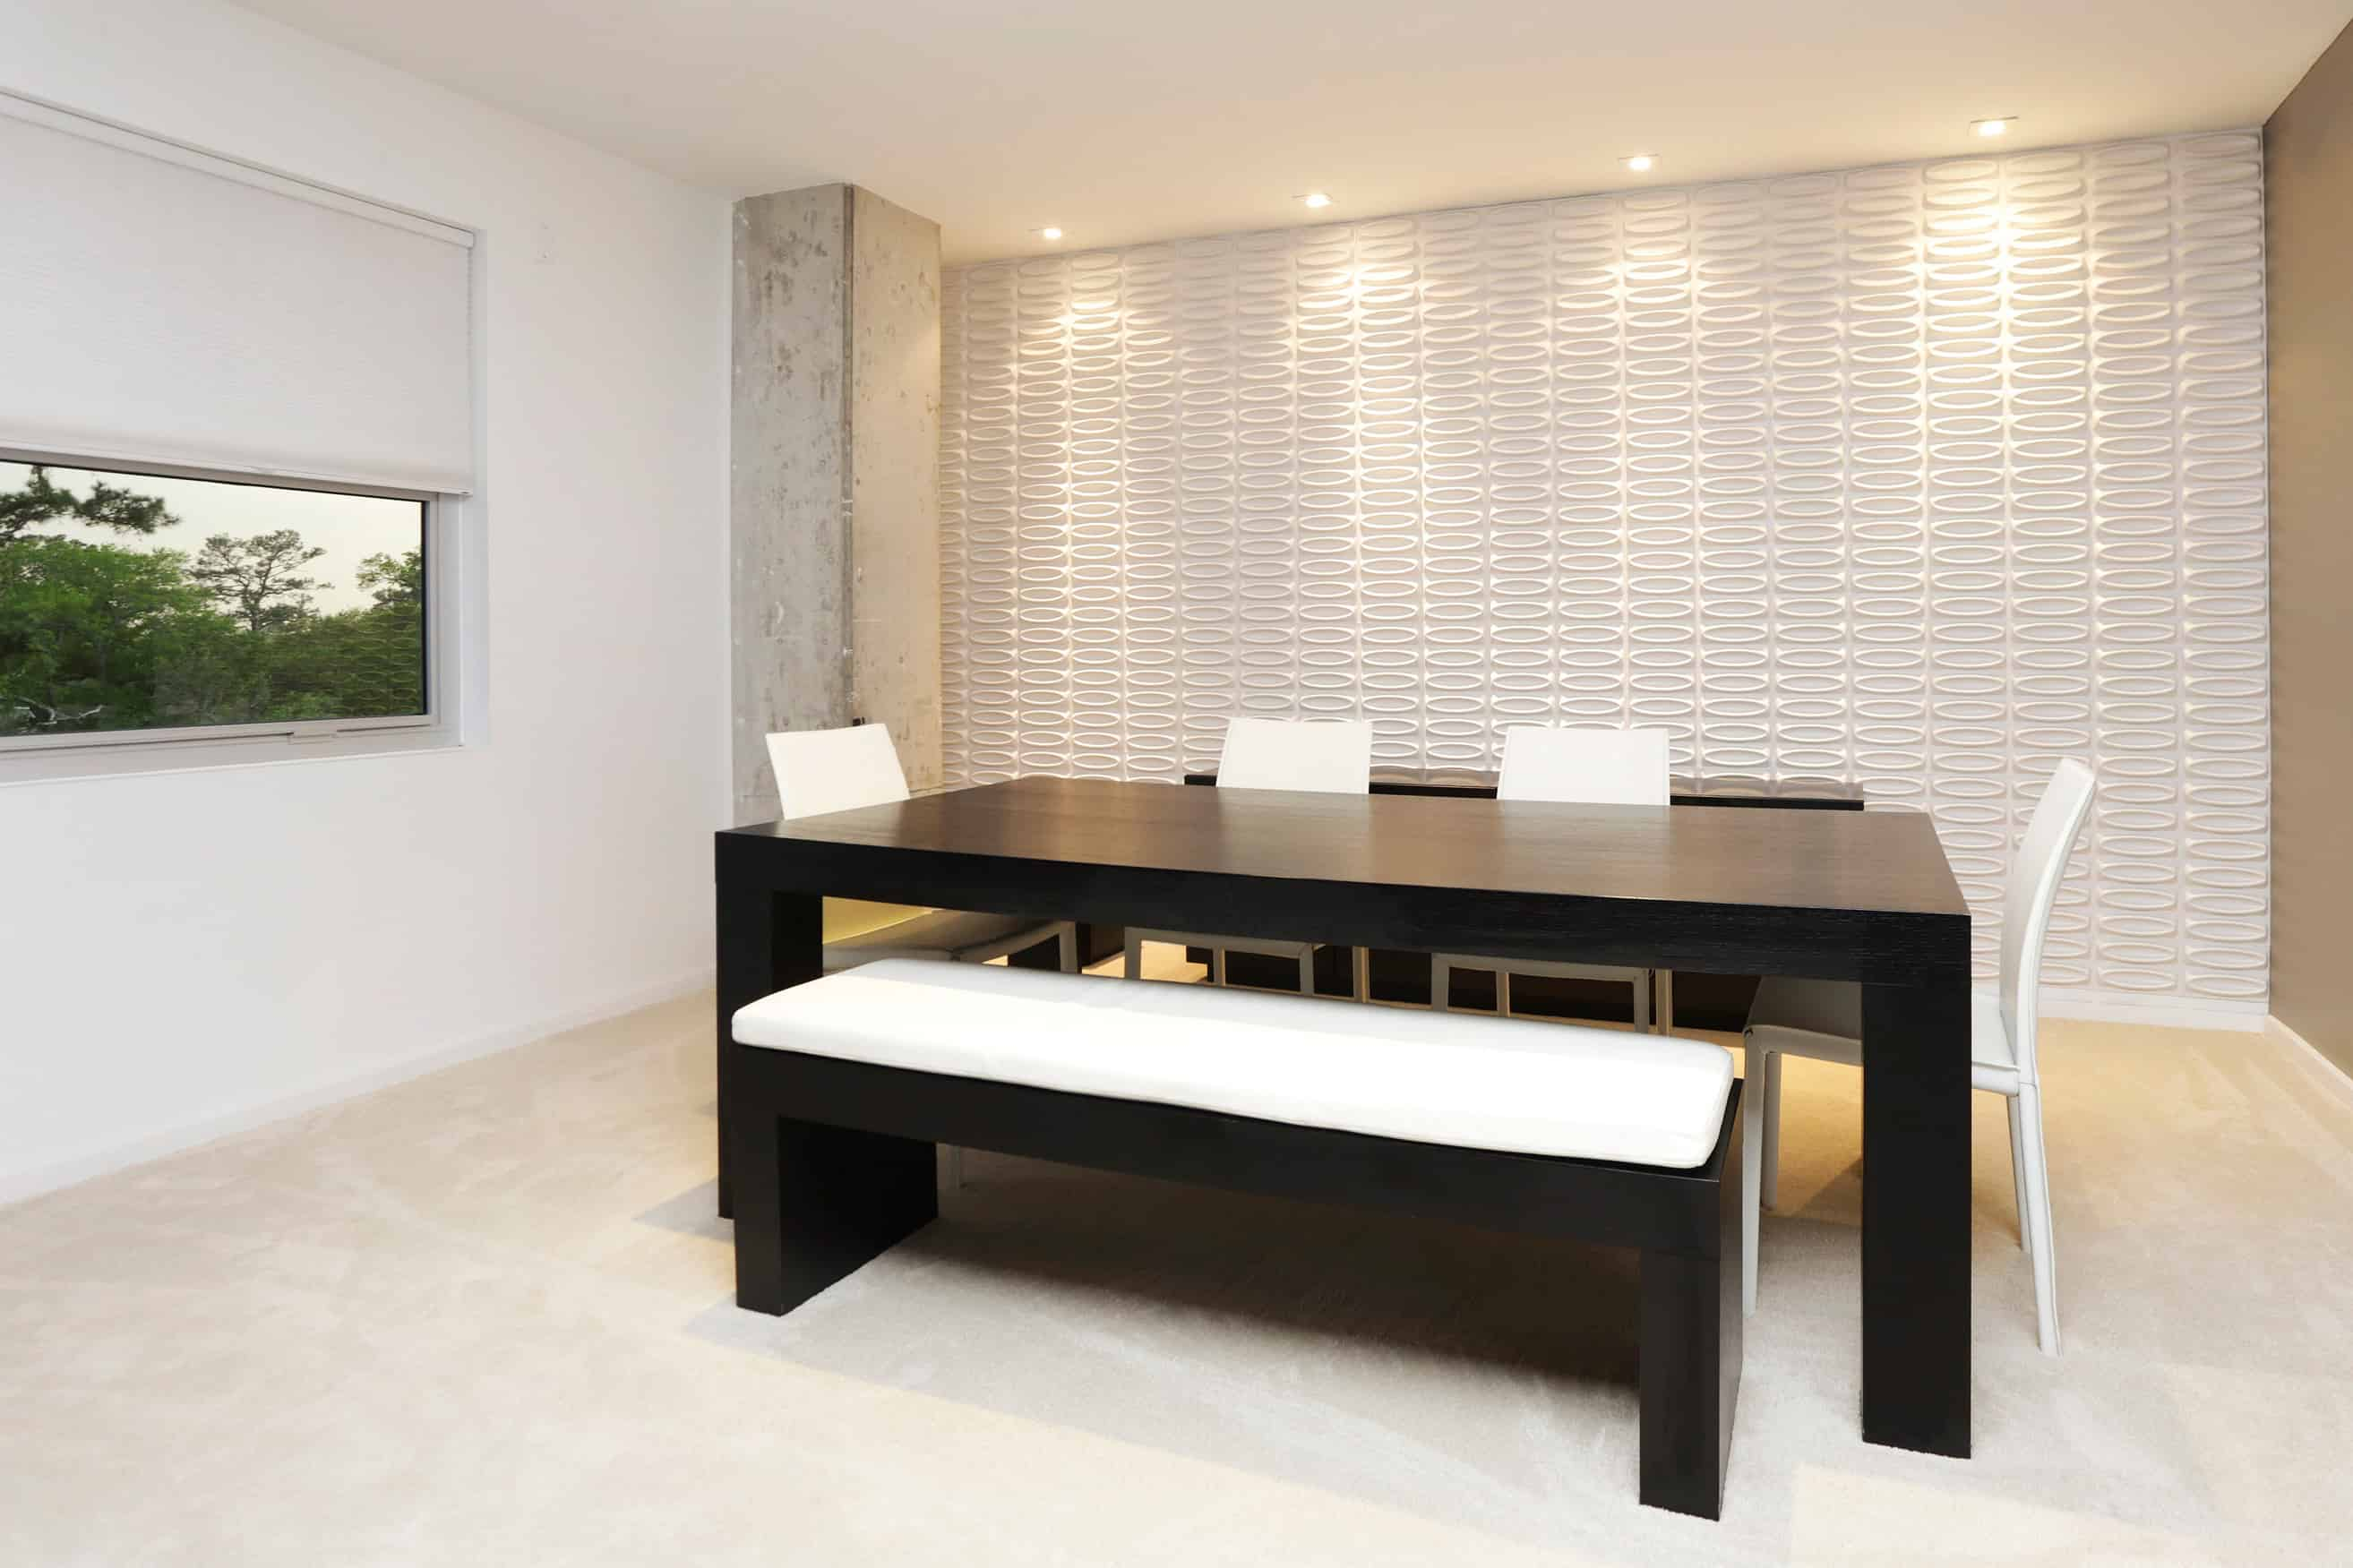 Memorial Luxury Loft bedroom industrial dining and textured wall tile